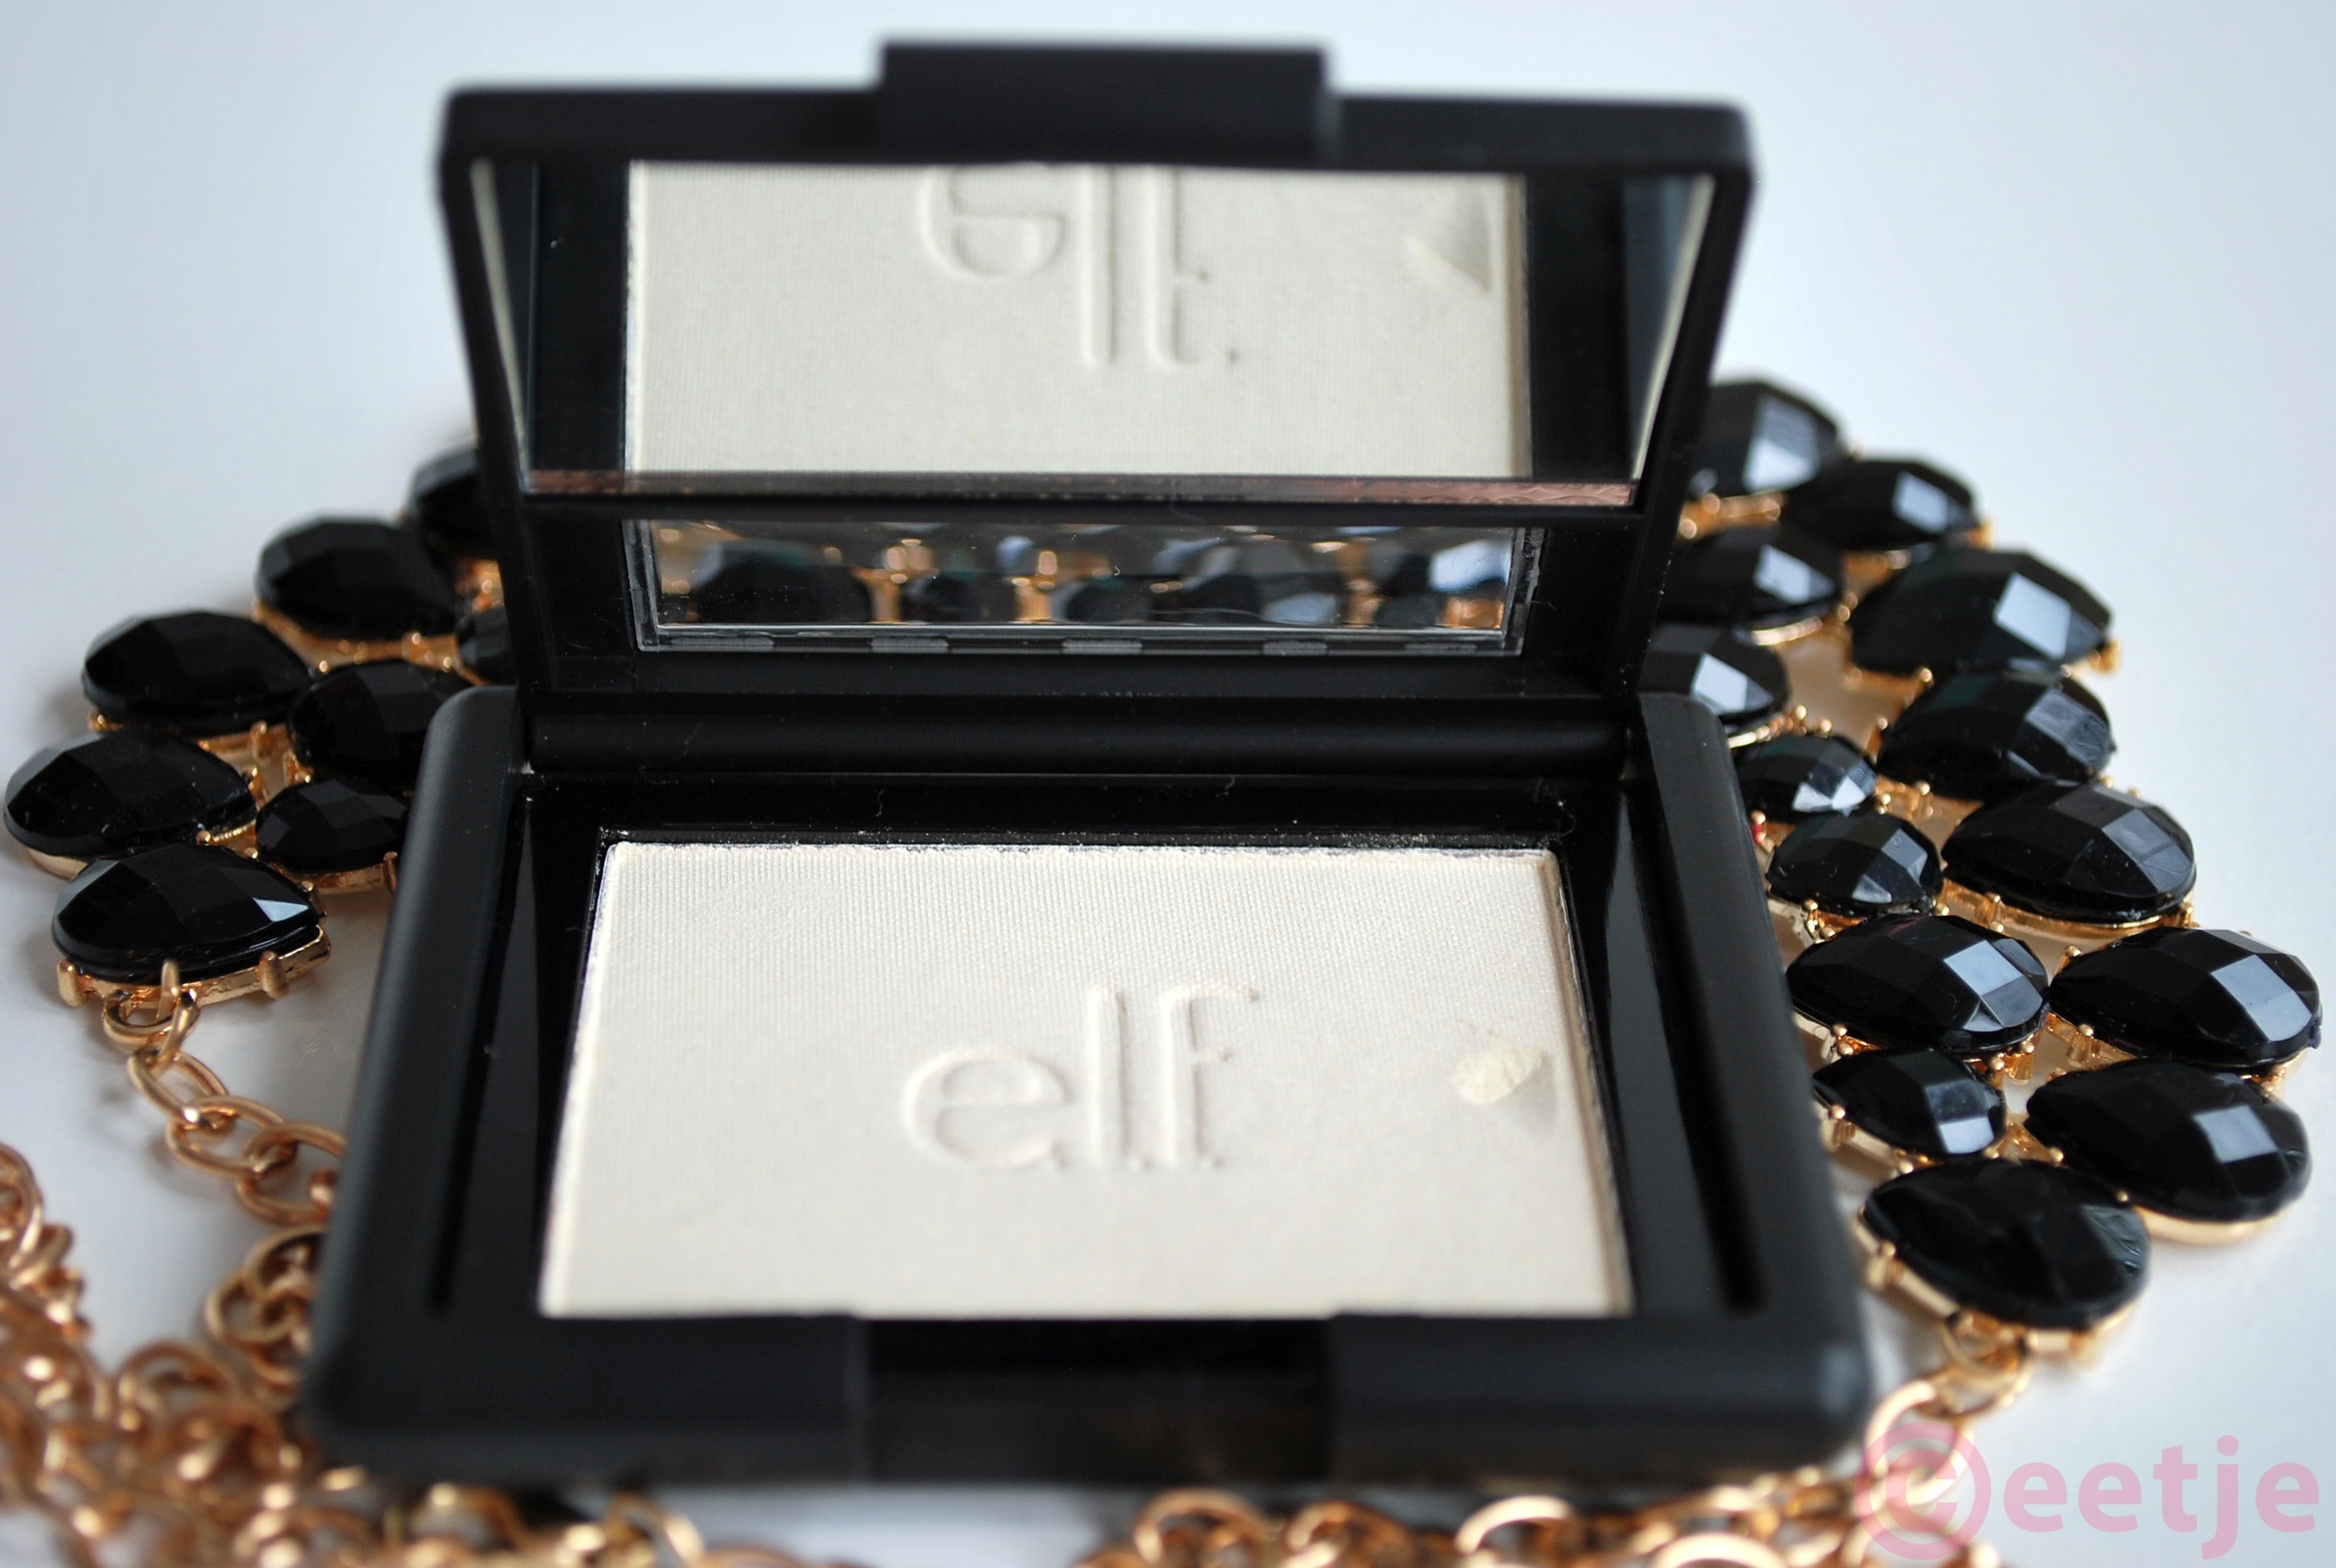 swatch-elf-gotta-glow-blush review dupe nars albatross